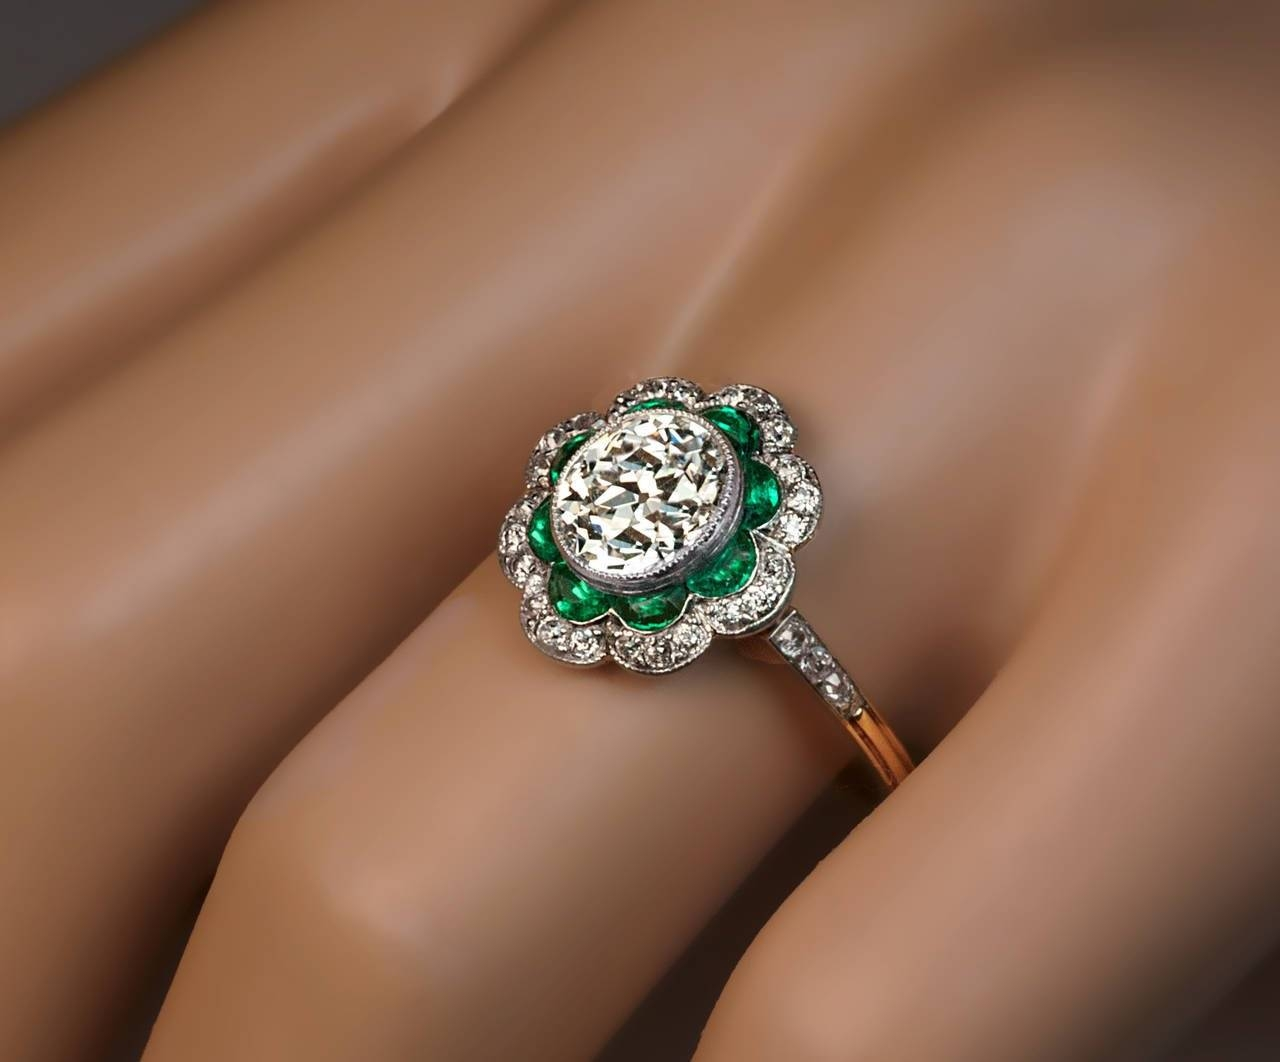 1920S Art Deco Emerald Diamond Platinum Engagement Ring At 1Stdibs Throughout Emerald Engagement Rings (View 2 of 15)